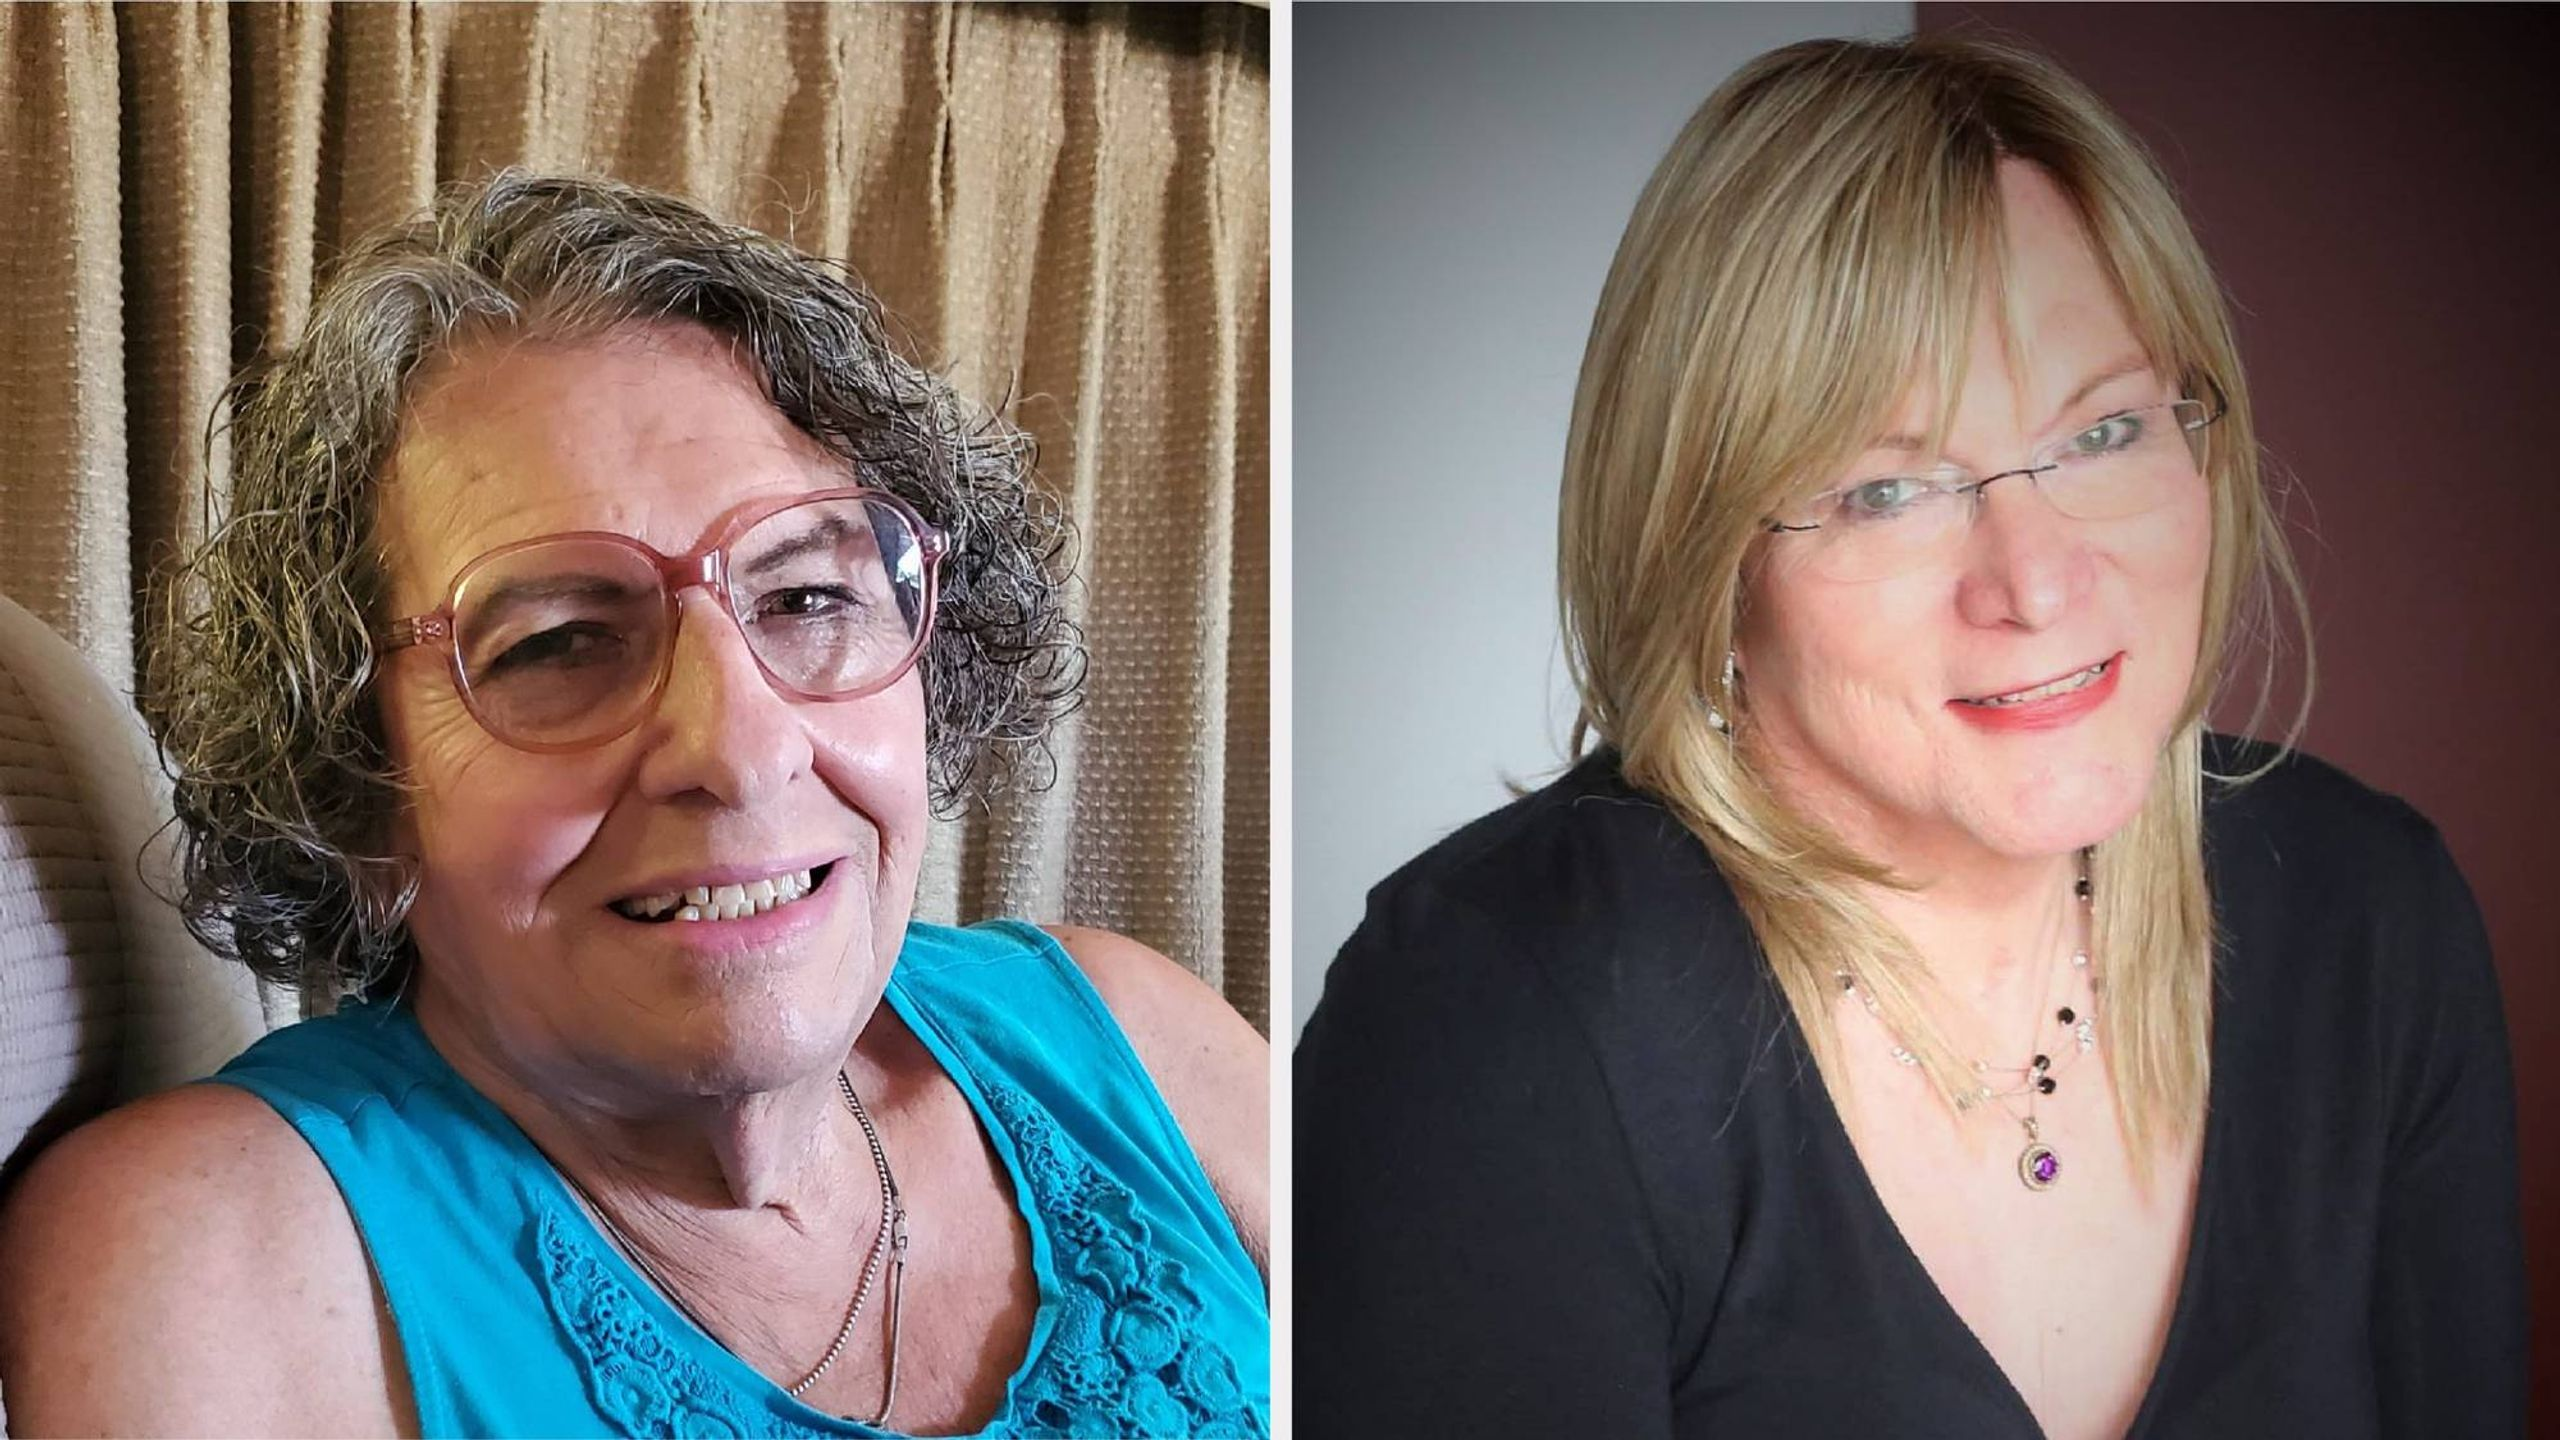 Side-by-side photos of the two women. Transgender women, older adults, Next Avenue